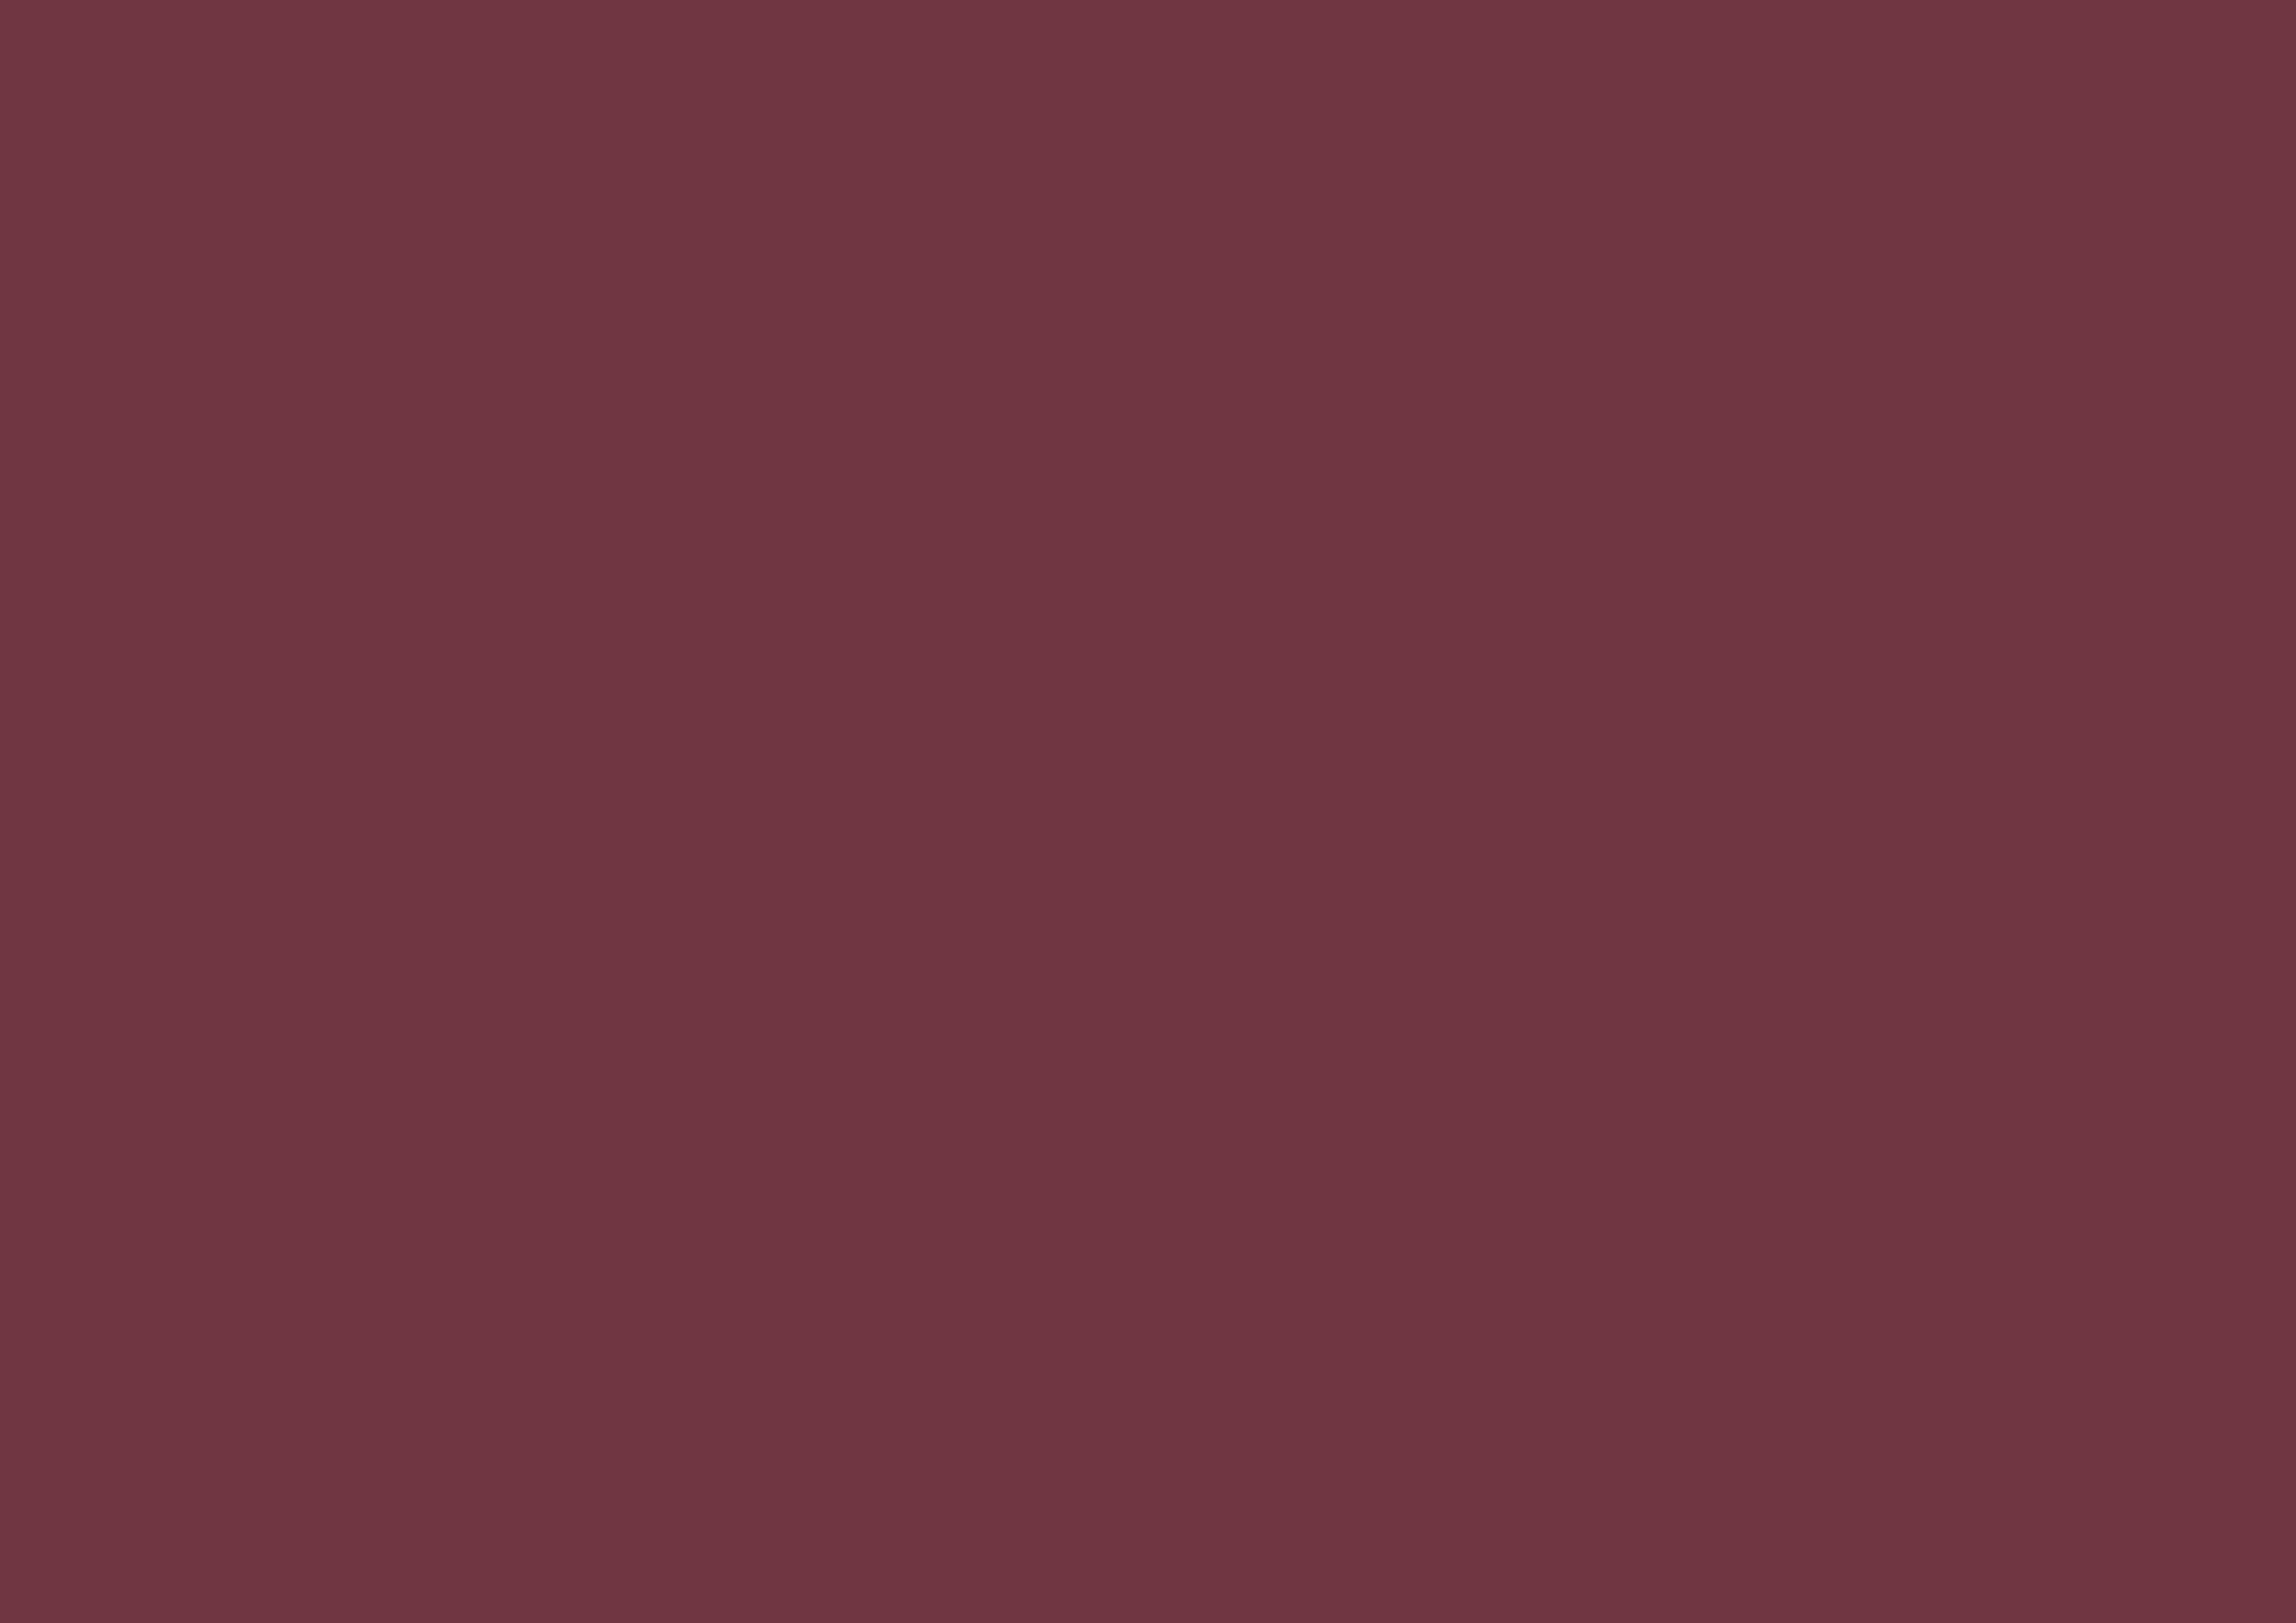 3508x2480 Catawba Solid Color Background